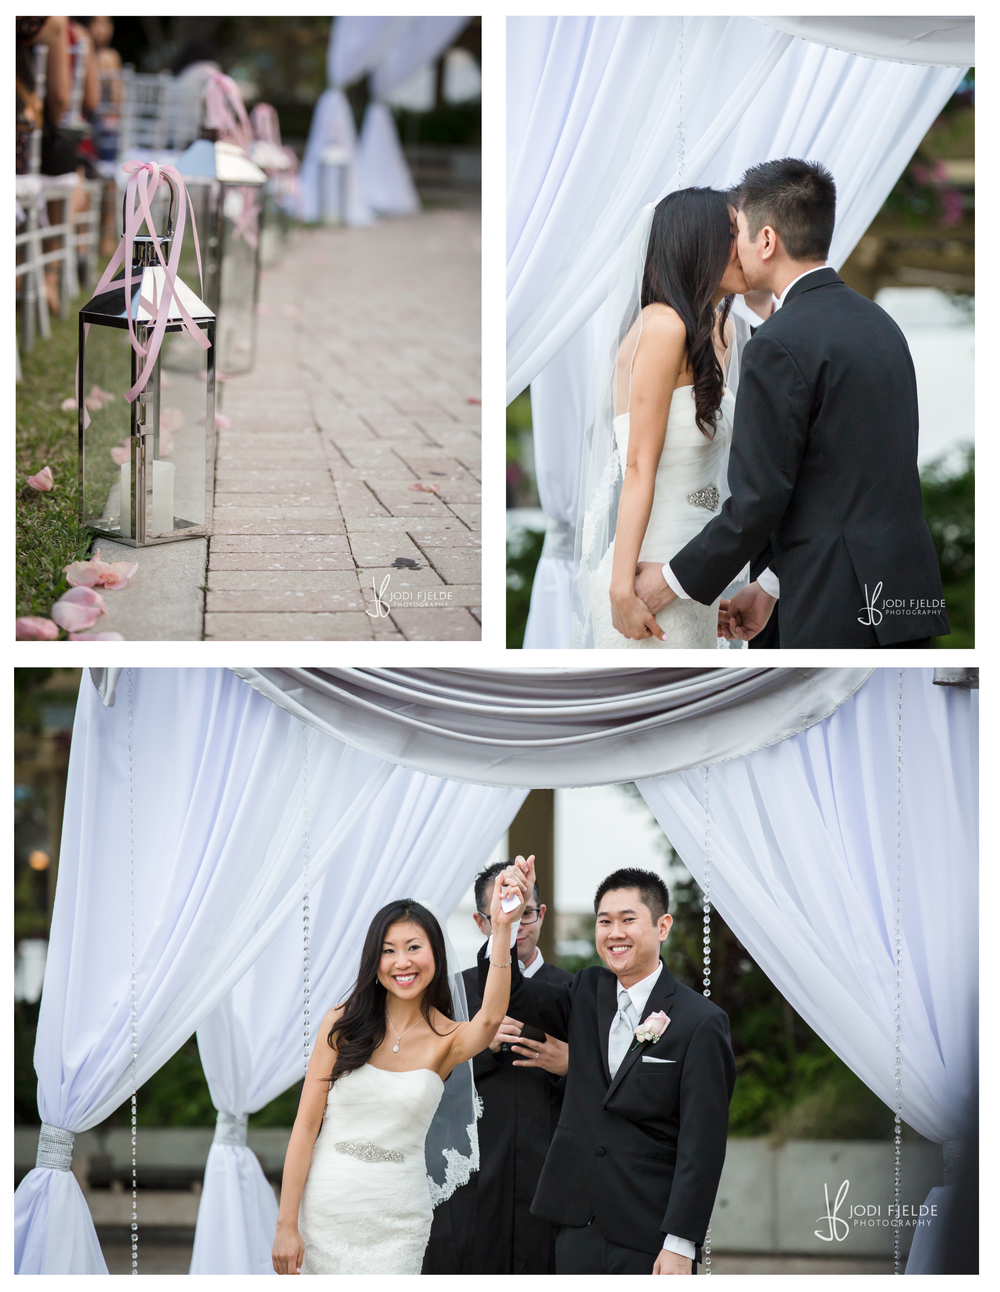 Lake_Pavilion_Wedding_West_Palm_Beach_Jodi_Fjelde_Photography_Betty_Alex_Sociaety_Of_Four _Arts_18.jpg